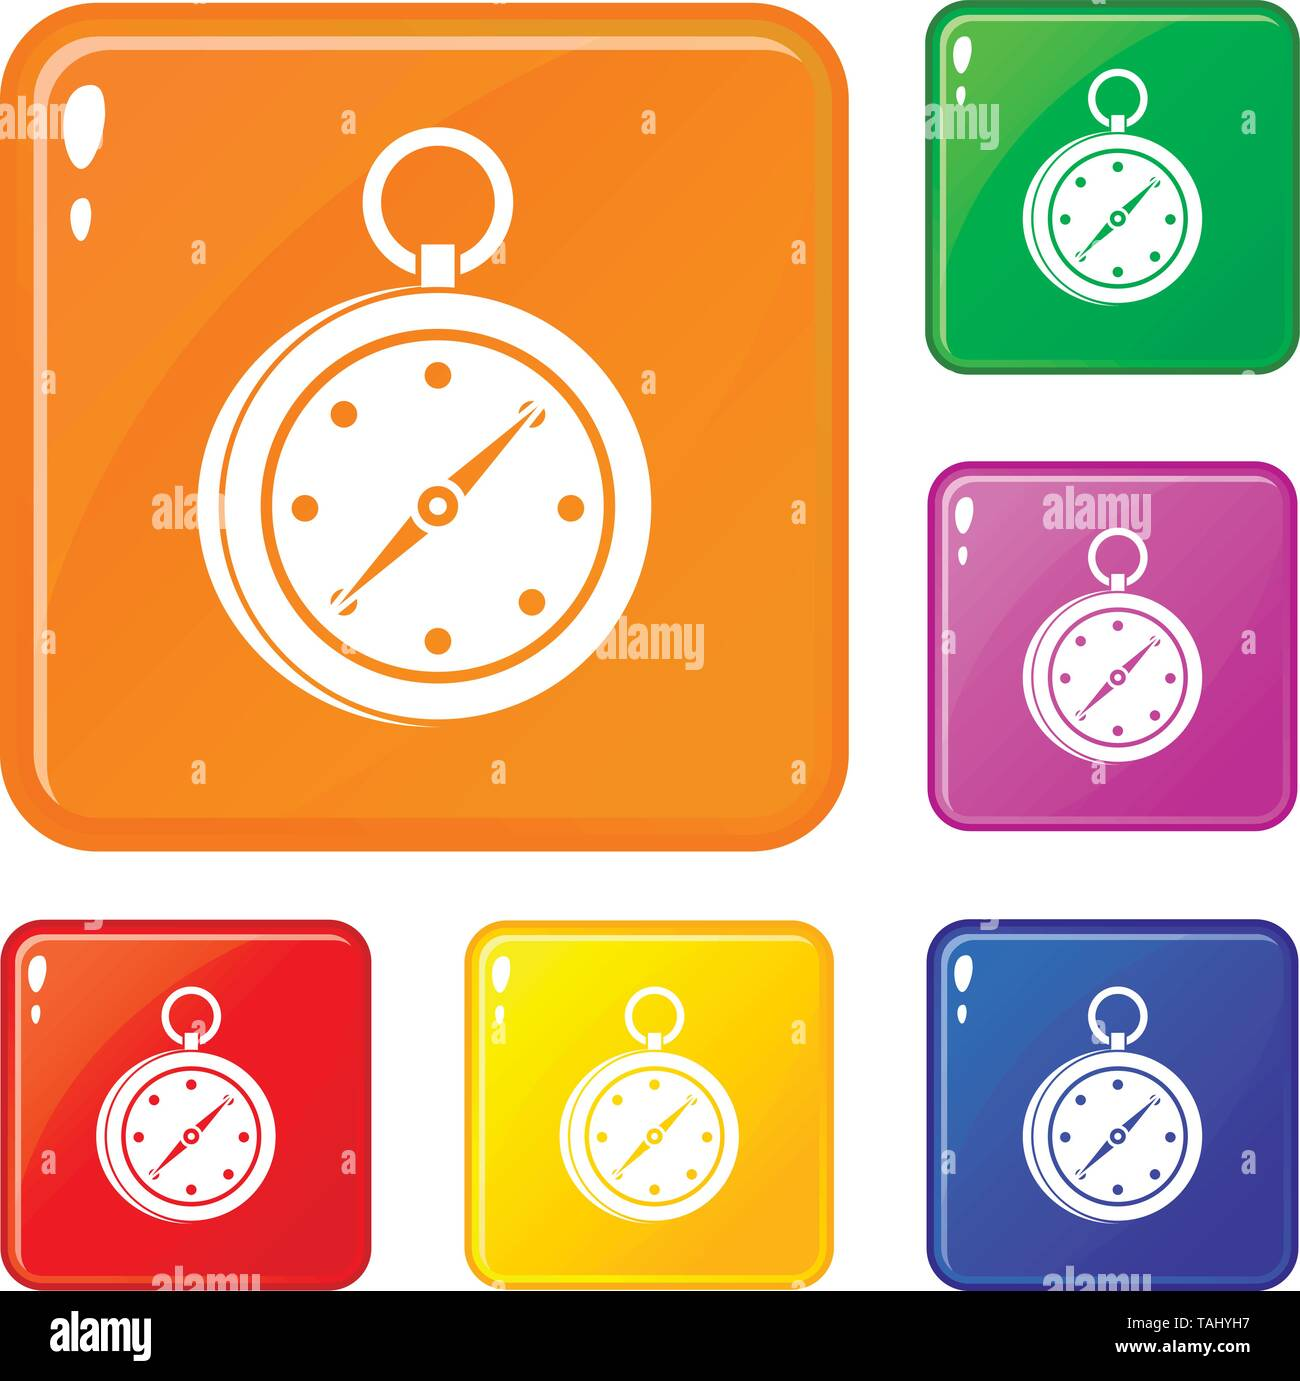 Multifunction knife icons set vector color - Stock Image